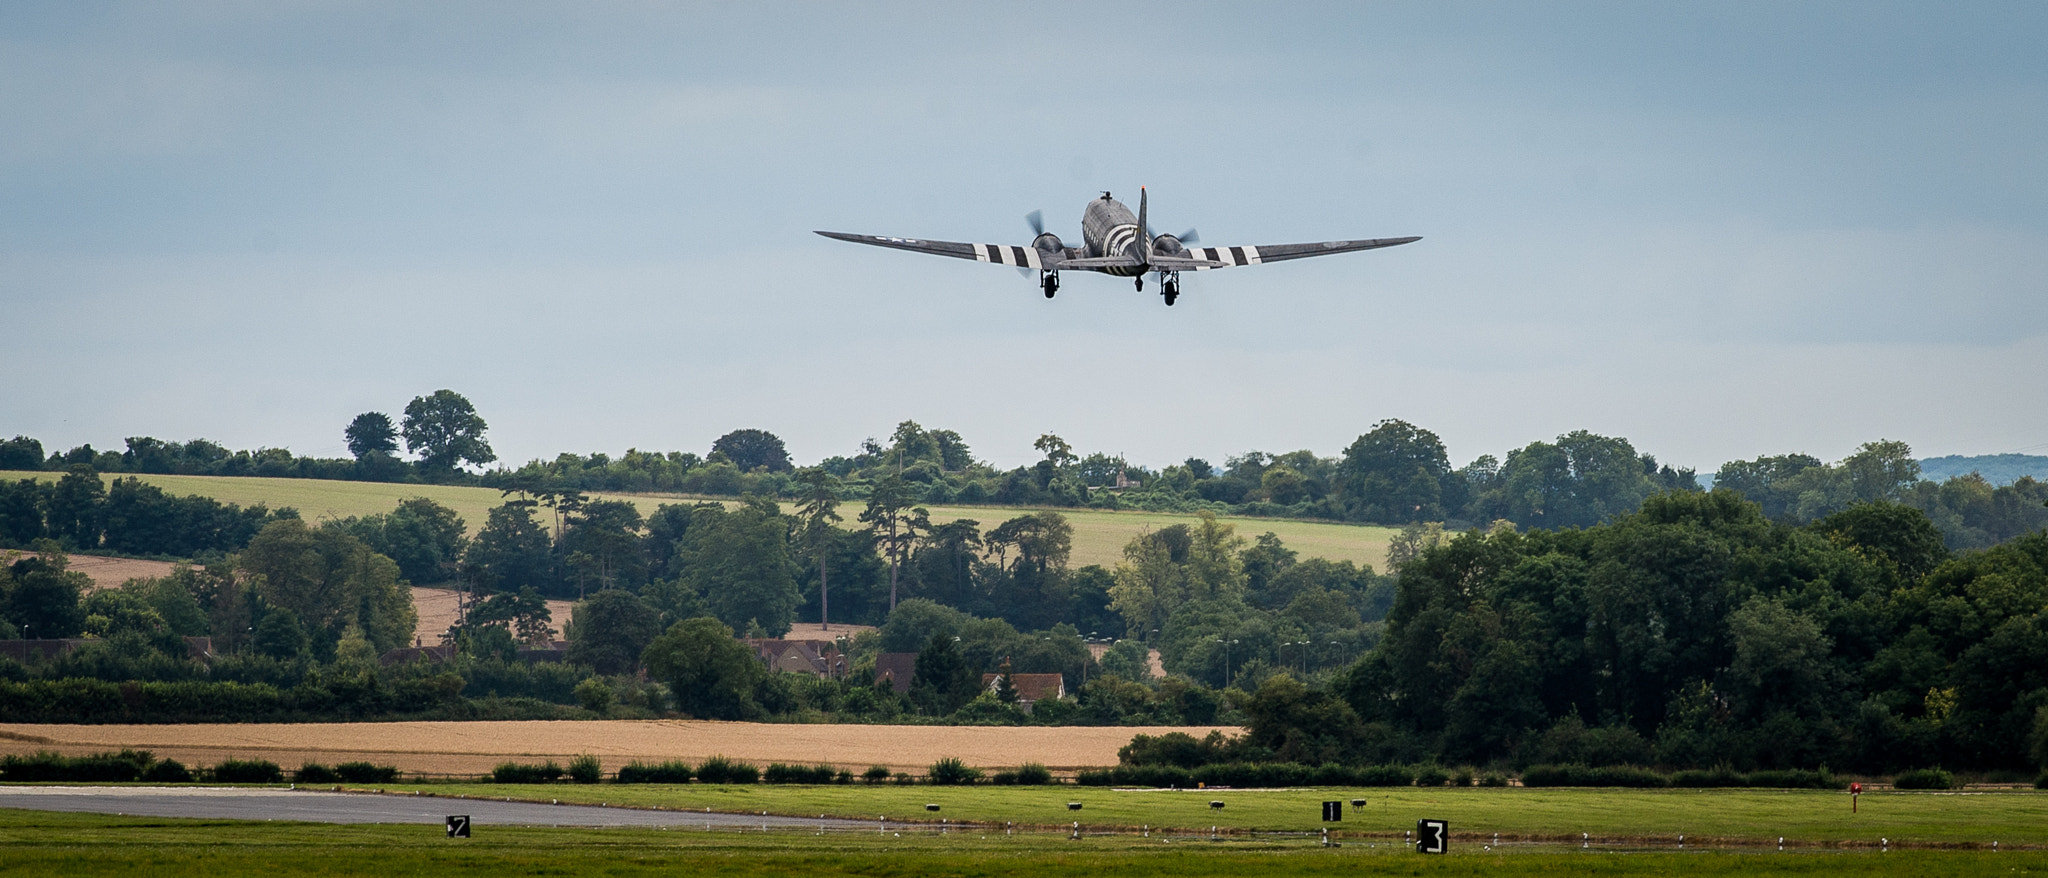 Photograph Dak Departure by Guy Swarbrick on 500px